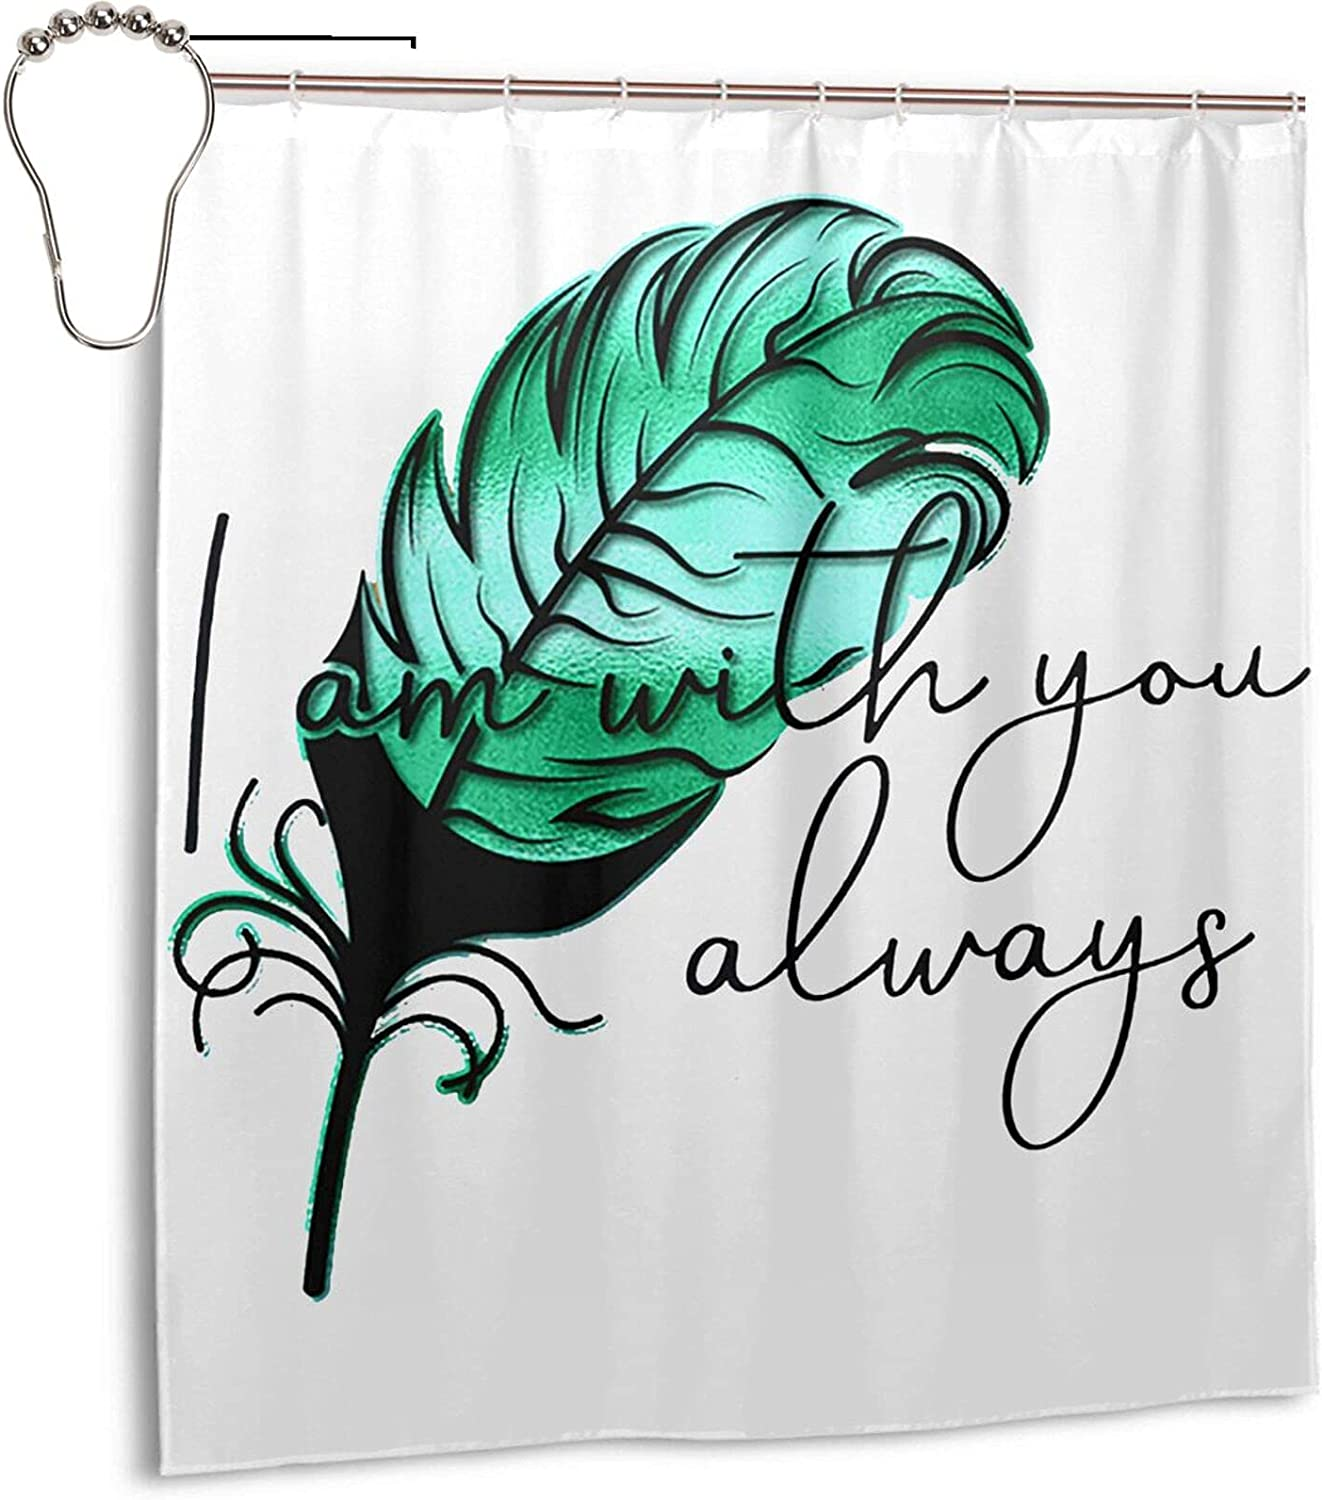 Credence I Am with You Always Fabric Waterproof trust Shower Bath Curtain